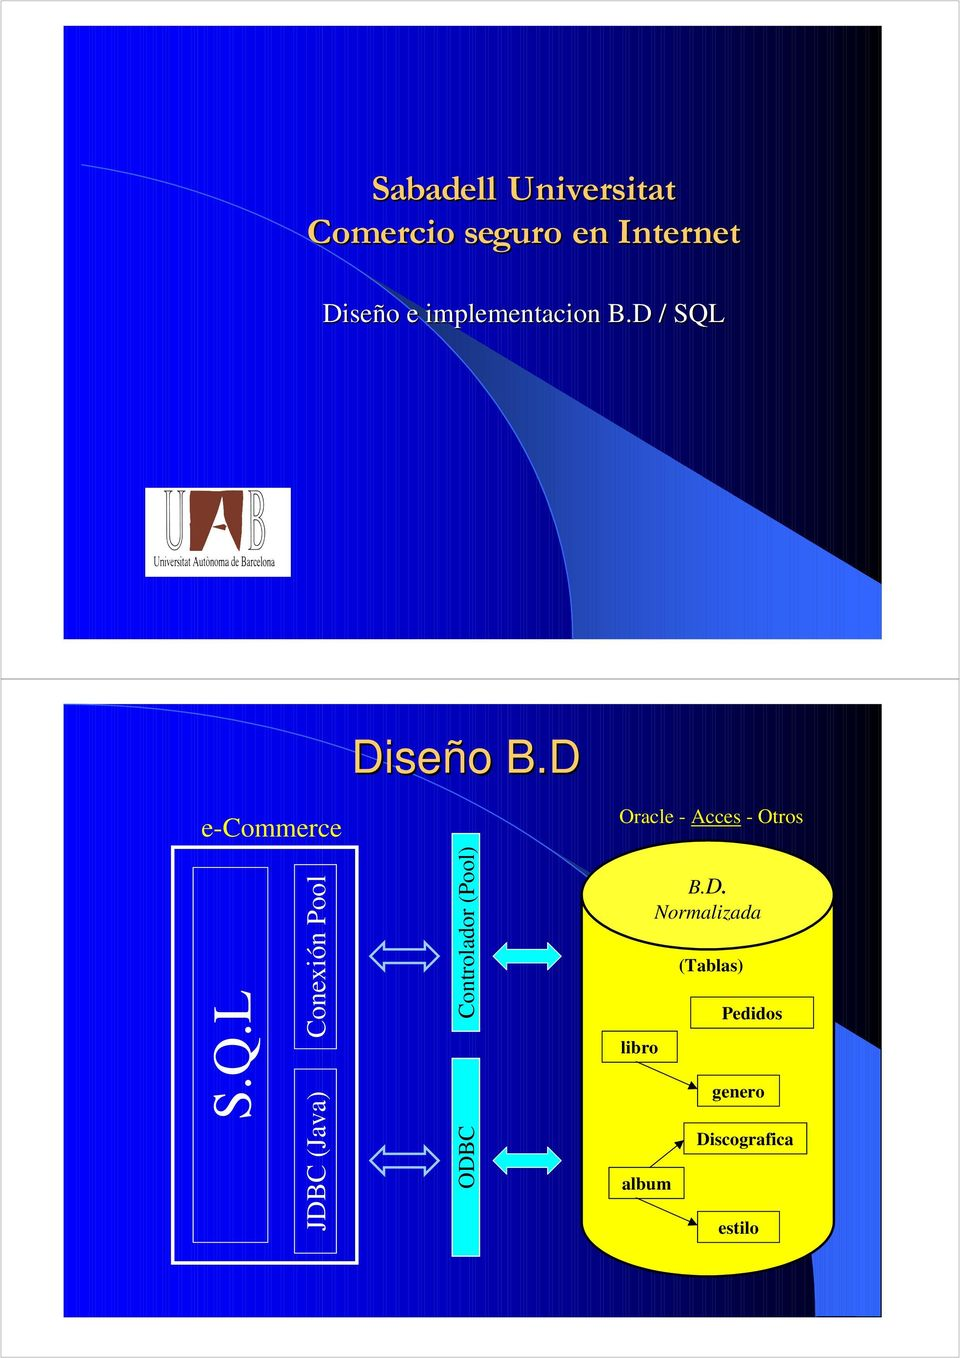 Diseño B.D e-commerce S.Q.